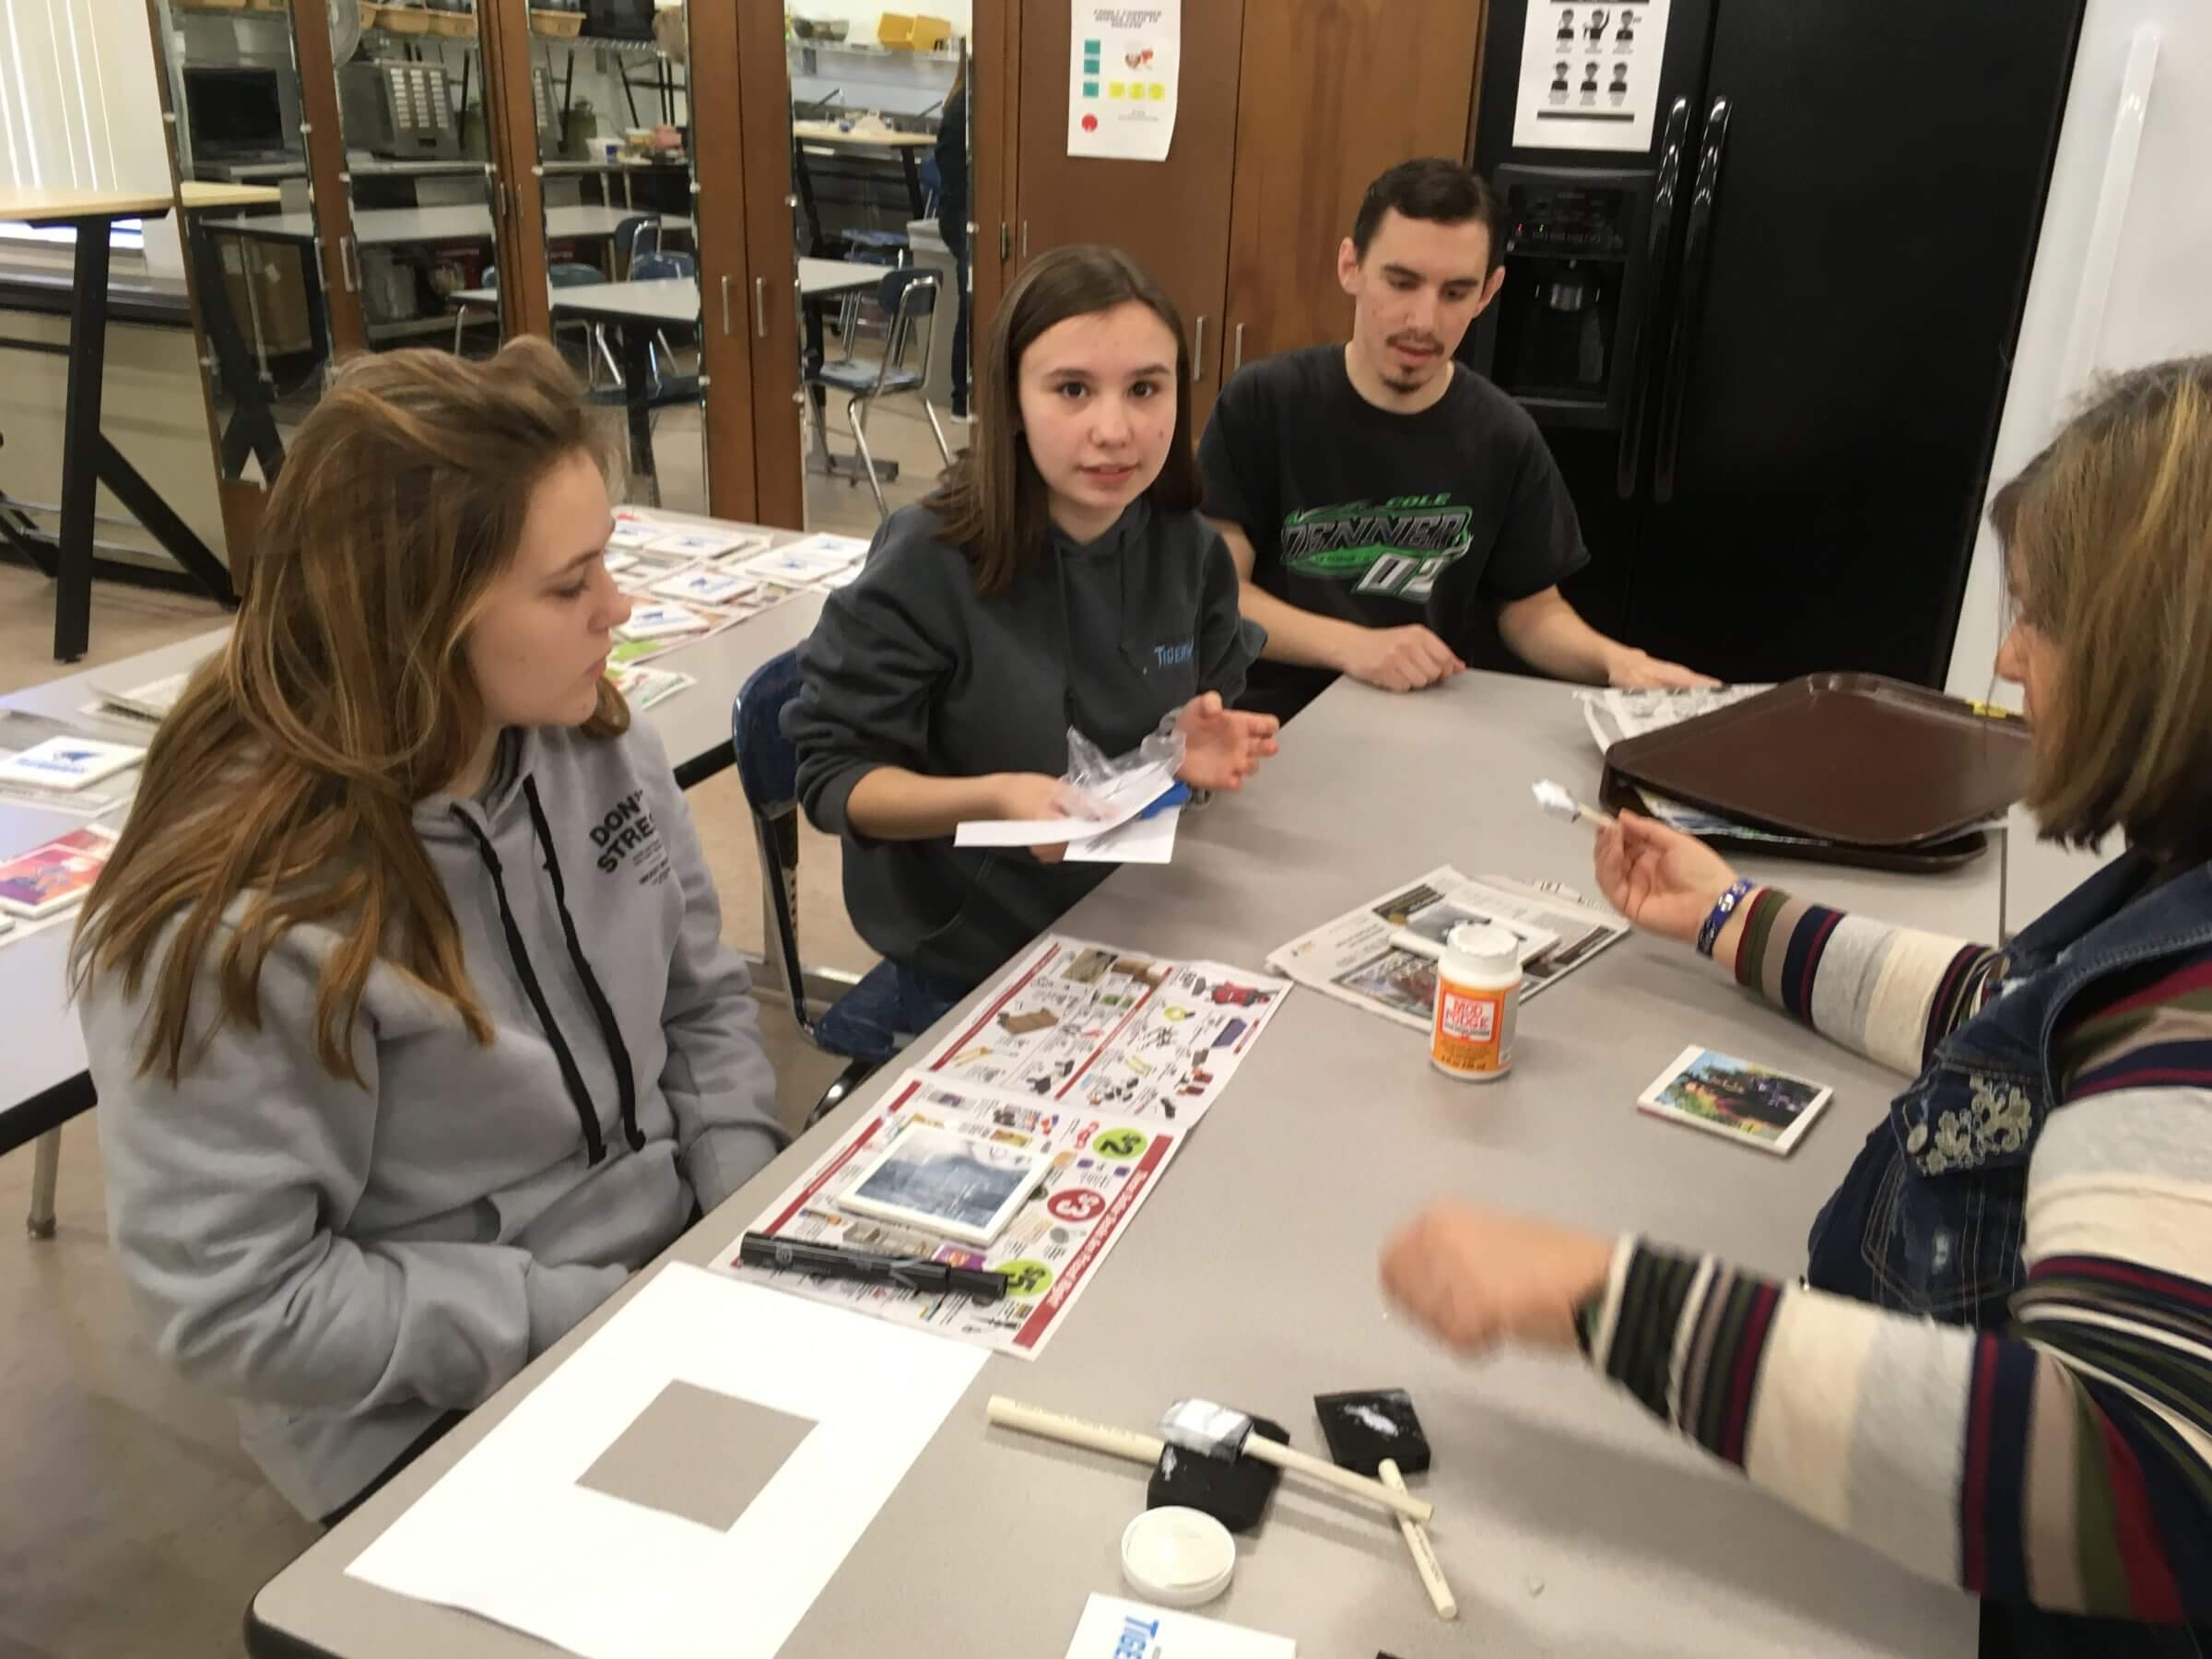 Students participating in recreational activity